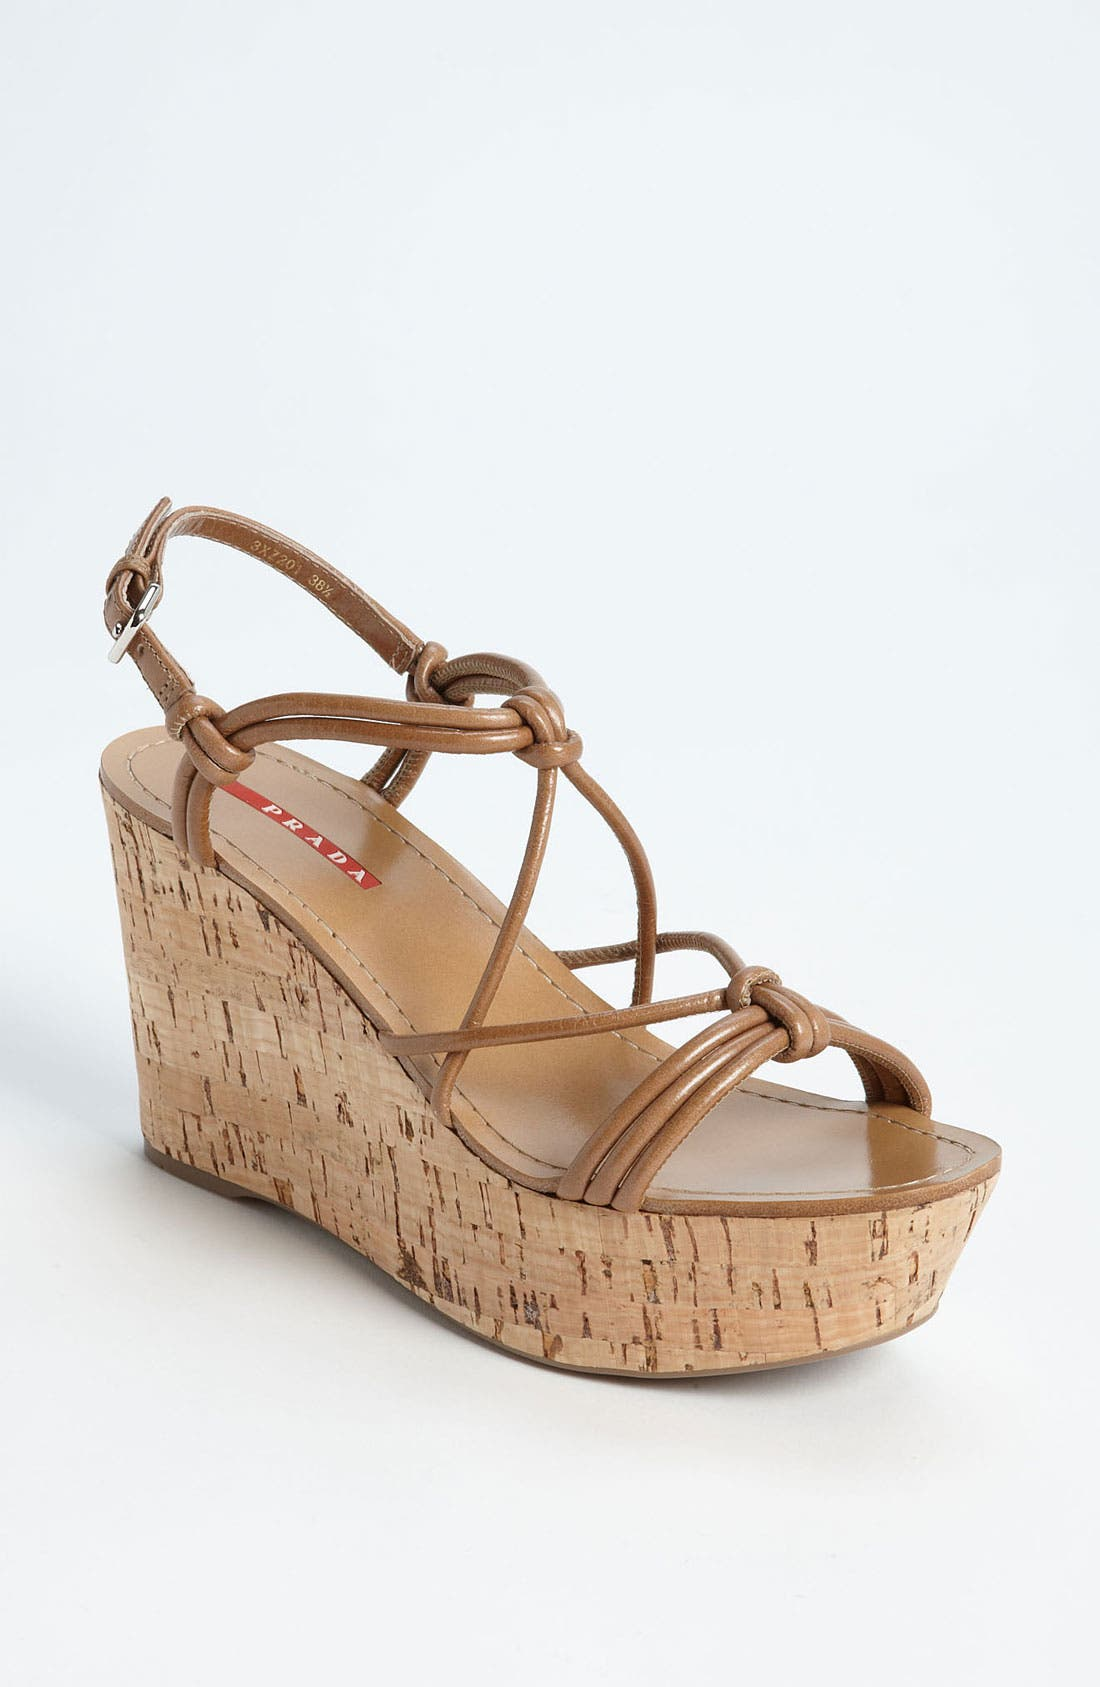 Alternate Image 1 Selected - Prada Cork Wedge Sandal